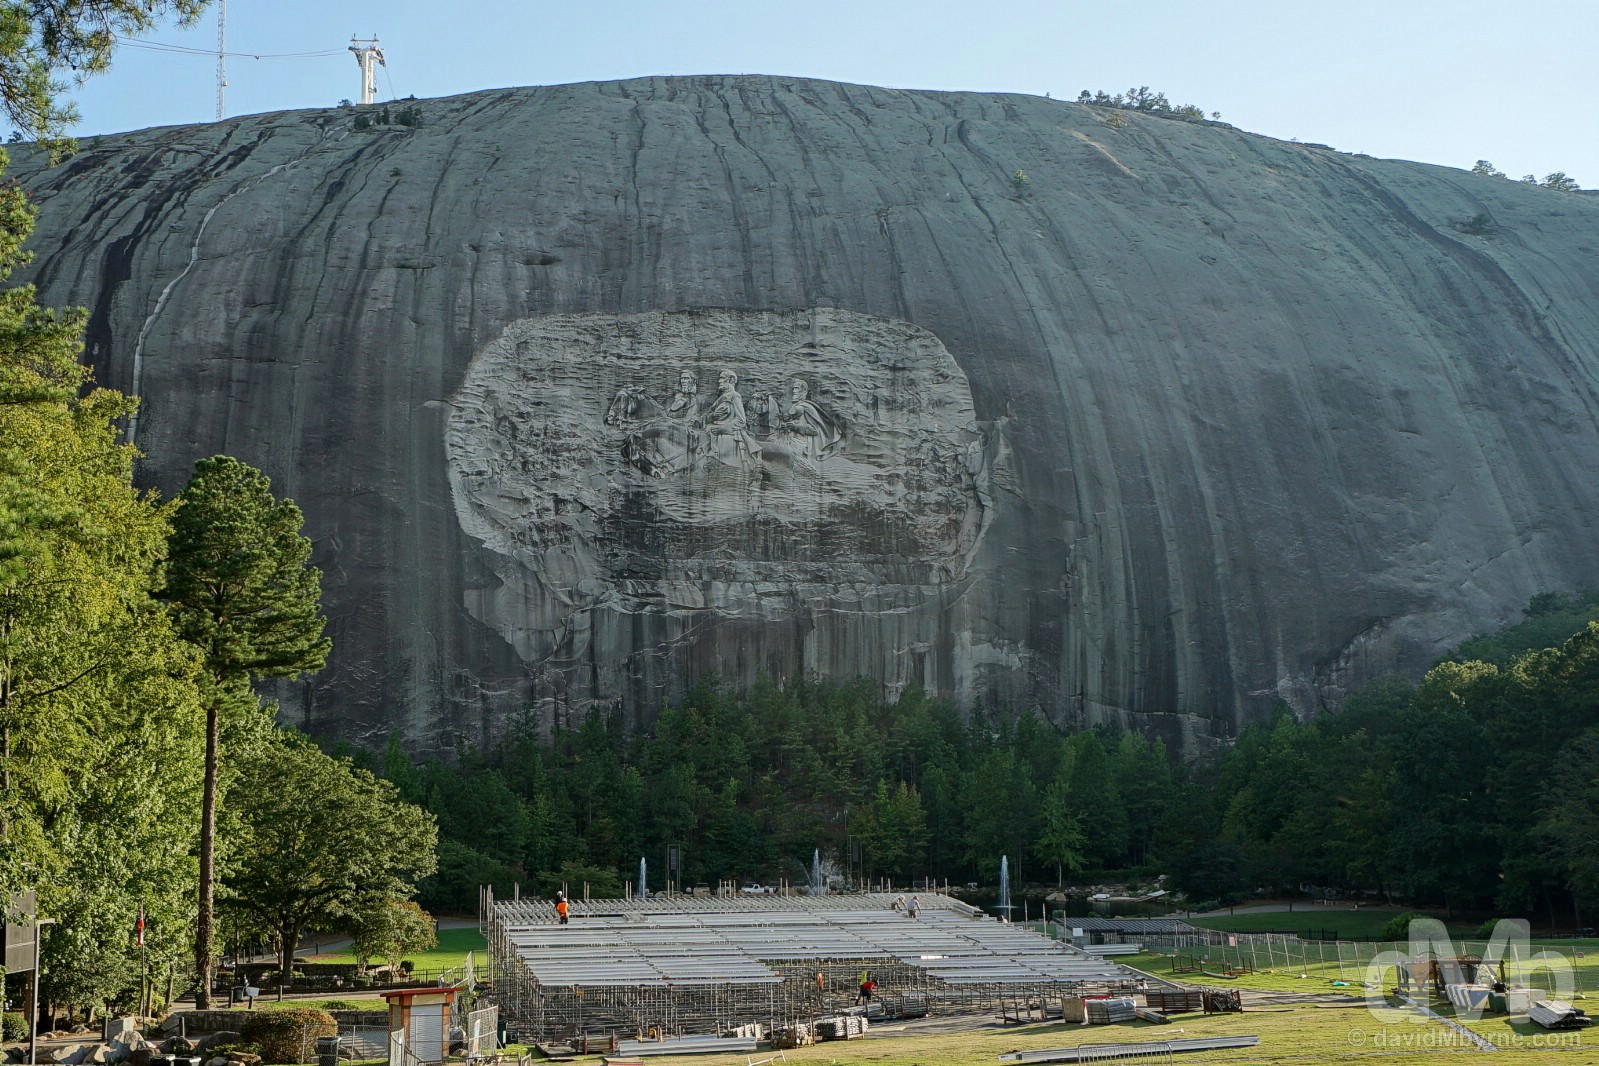 Stone Mountain of Stone Mountain Park, Georgia, USA. September 21, 2016.